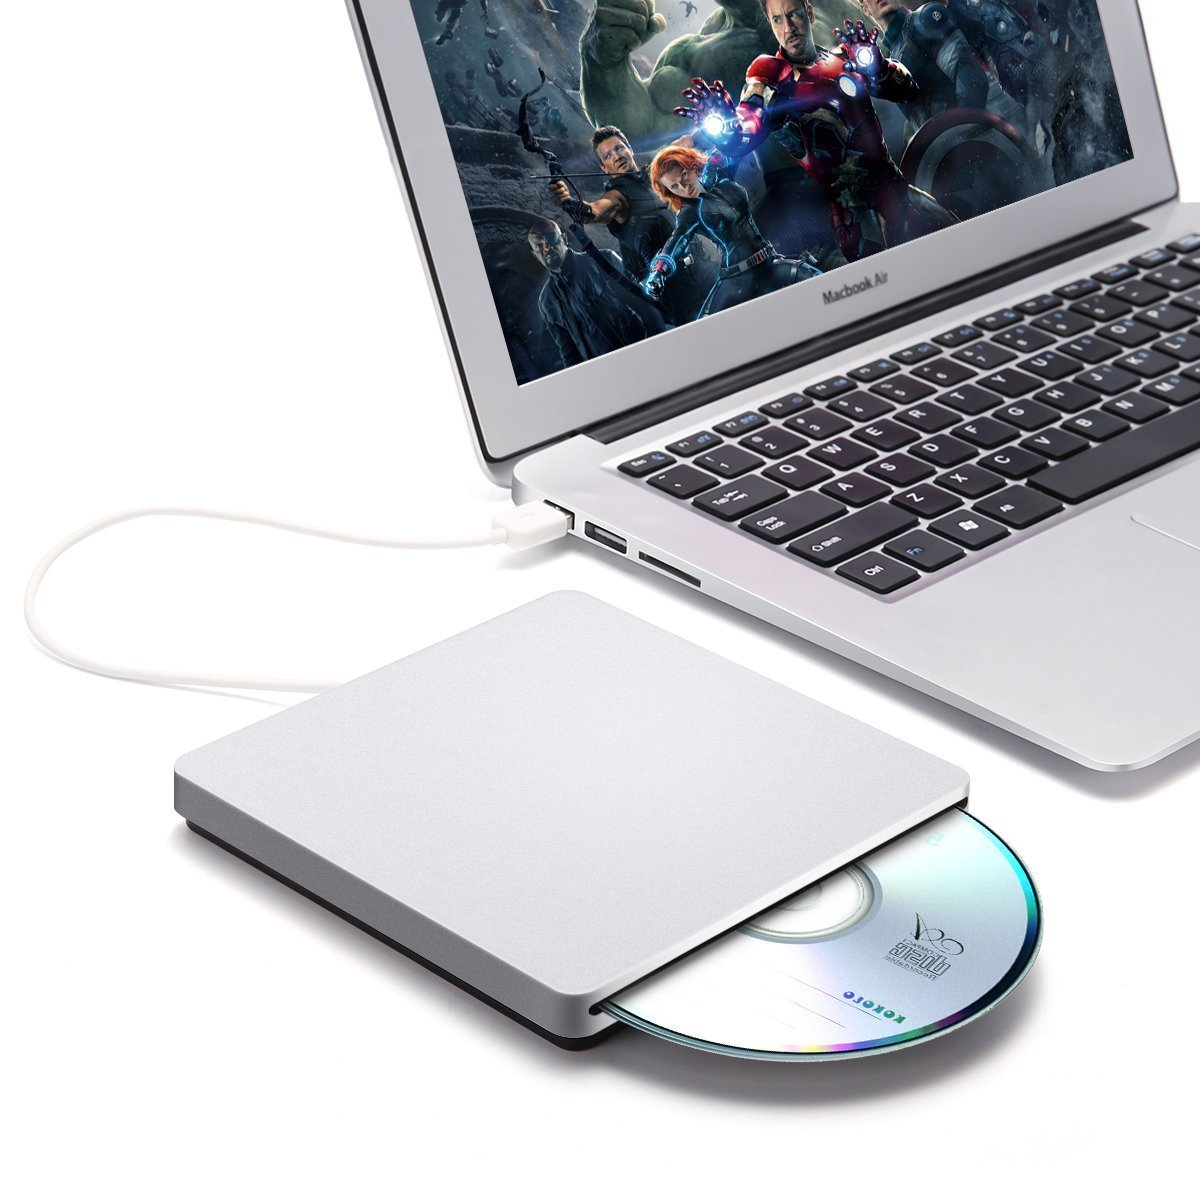 External CD DVD Drive,ONCHOICE USB 2.0 External Disc Optical Drive, Slim CD/DVD-RW Writer Player Burner for Windows OS, Laptop Desktop PC